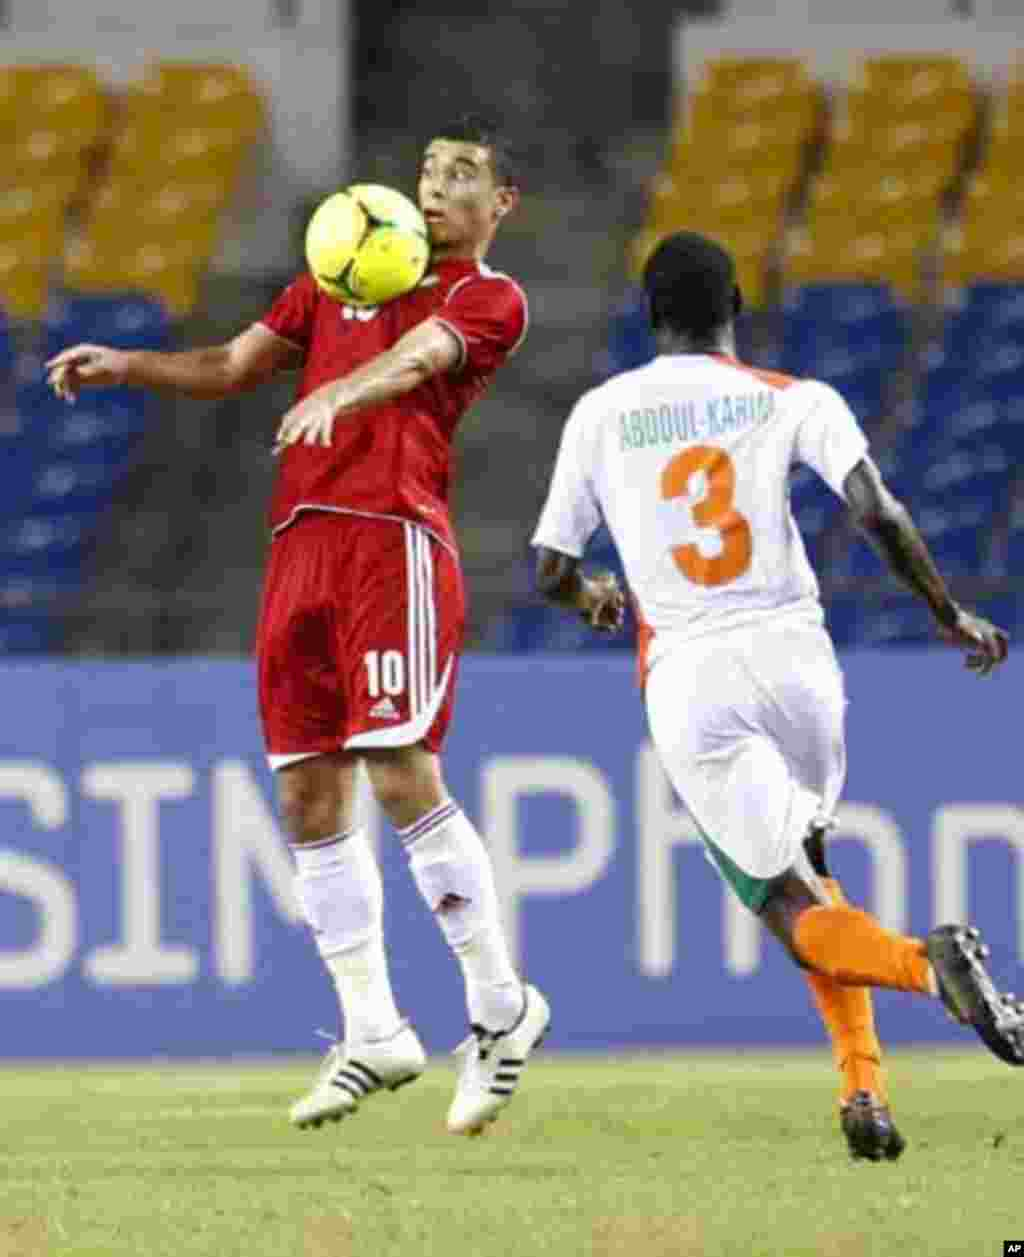 Morocco's Younes Belhanda (10) controls the ball against Niger's Karim Lancina during their final African Cup of Nations Group C soccer match at the Stade De L'Amitie Stadium in Libreville, Gabon January 31, 2012.